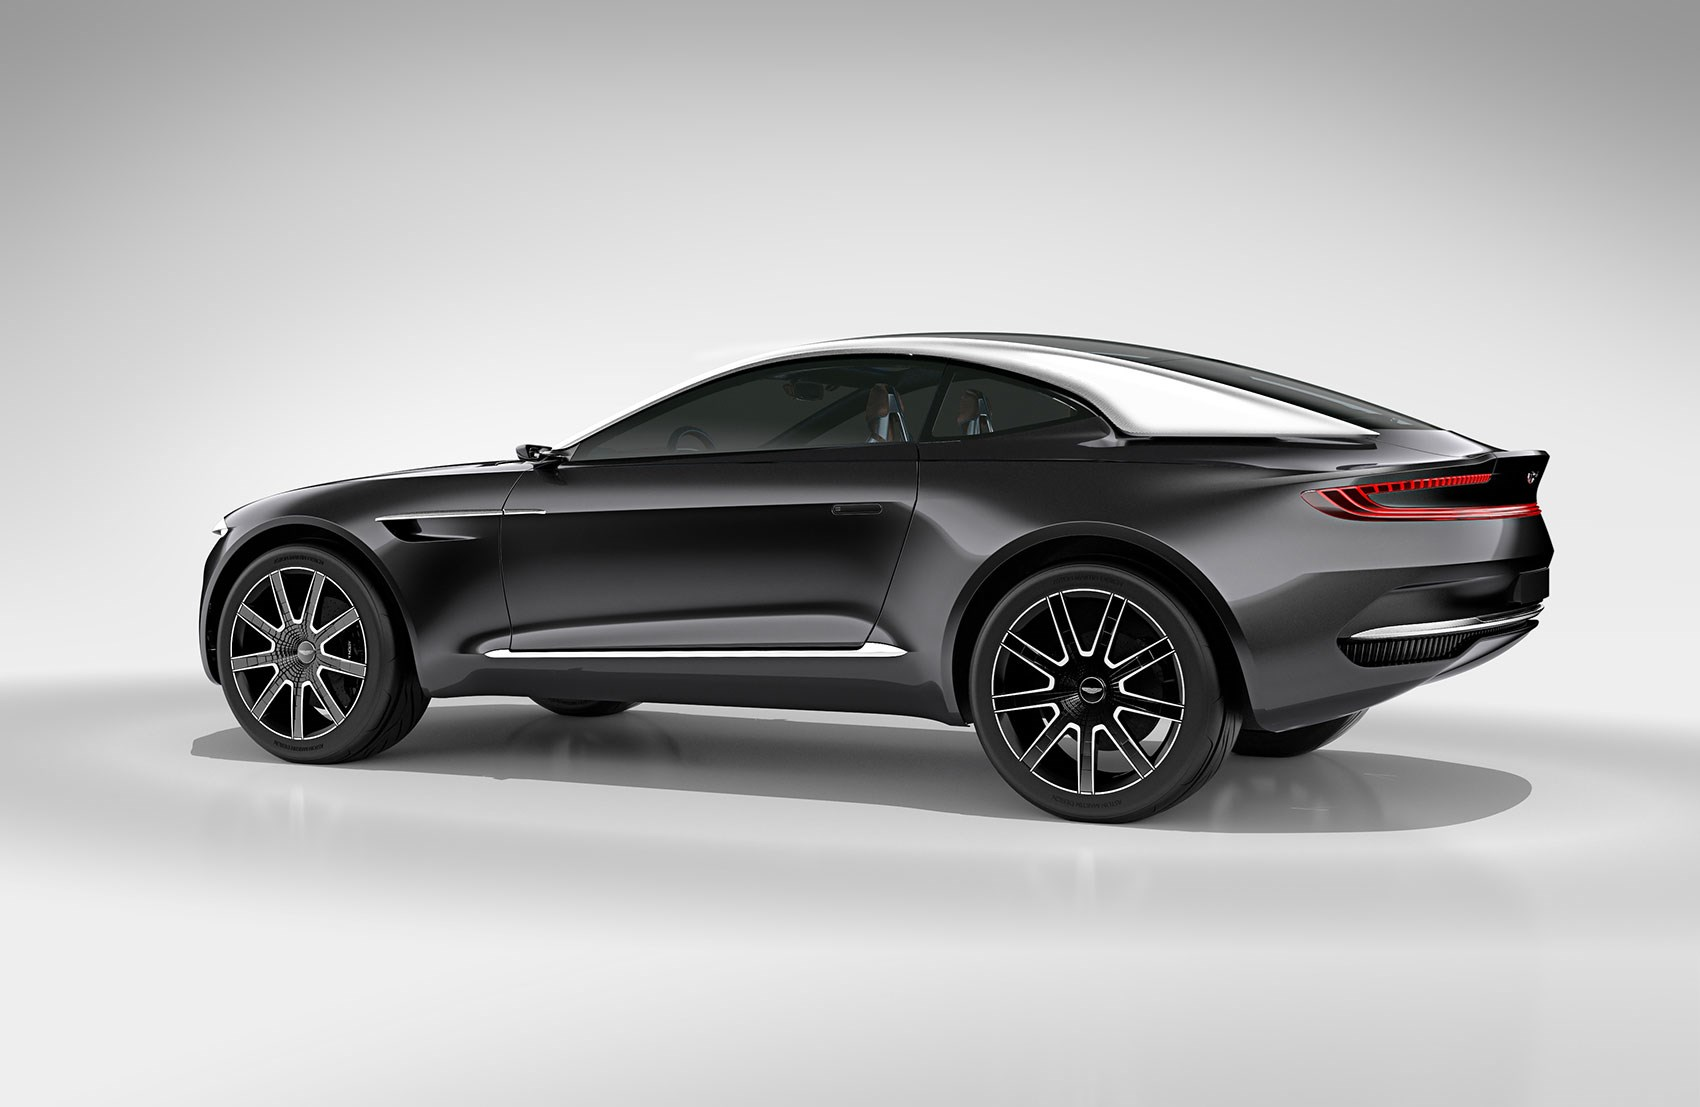 aston martin dbx crossover: 'aimed at 30-something women' | car magazine